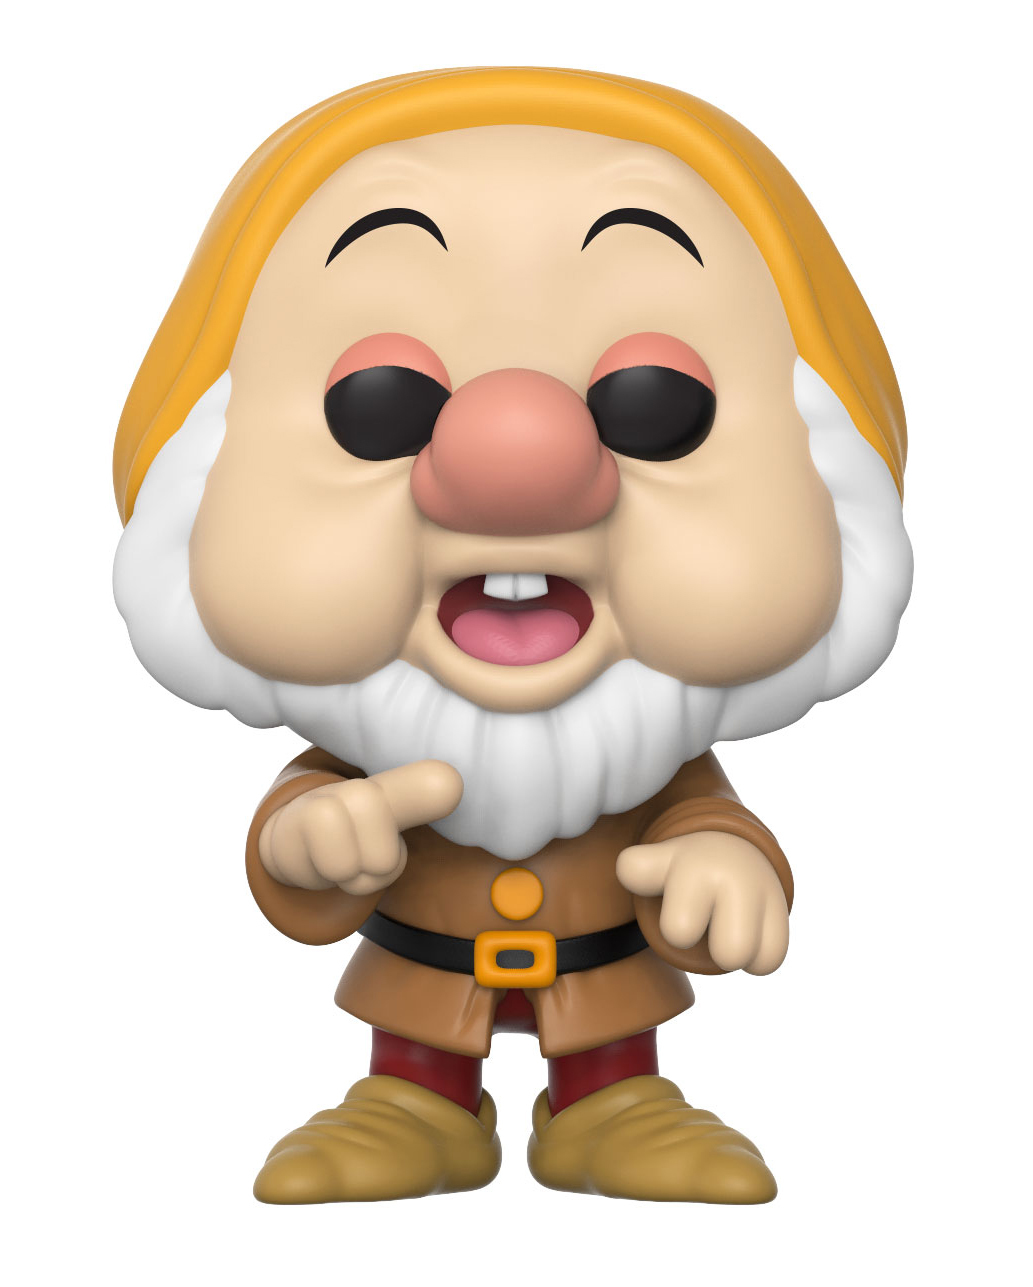 Snow White & the Seven Dwarfs - Sneezy Pop! Vinyl Figure image